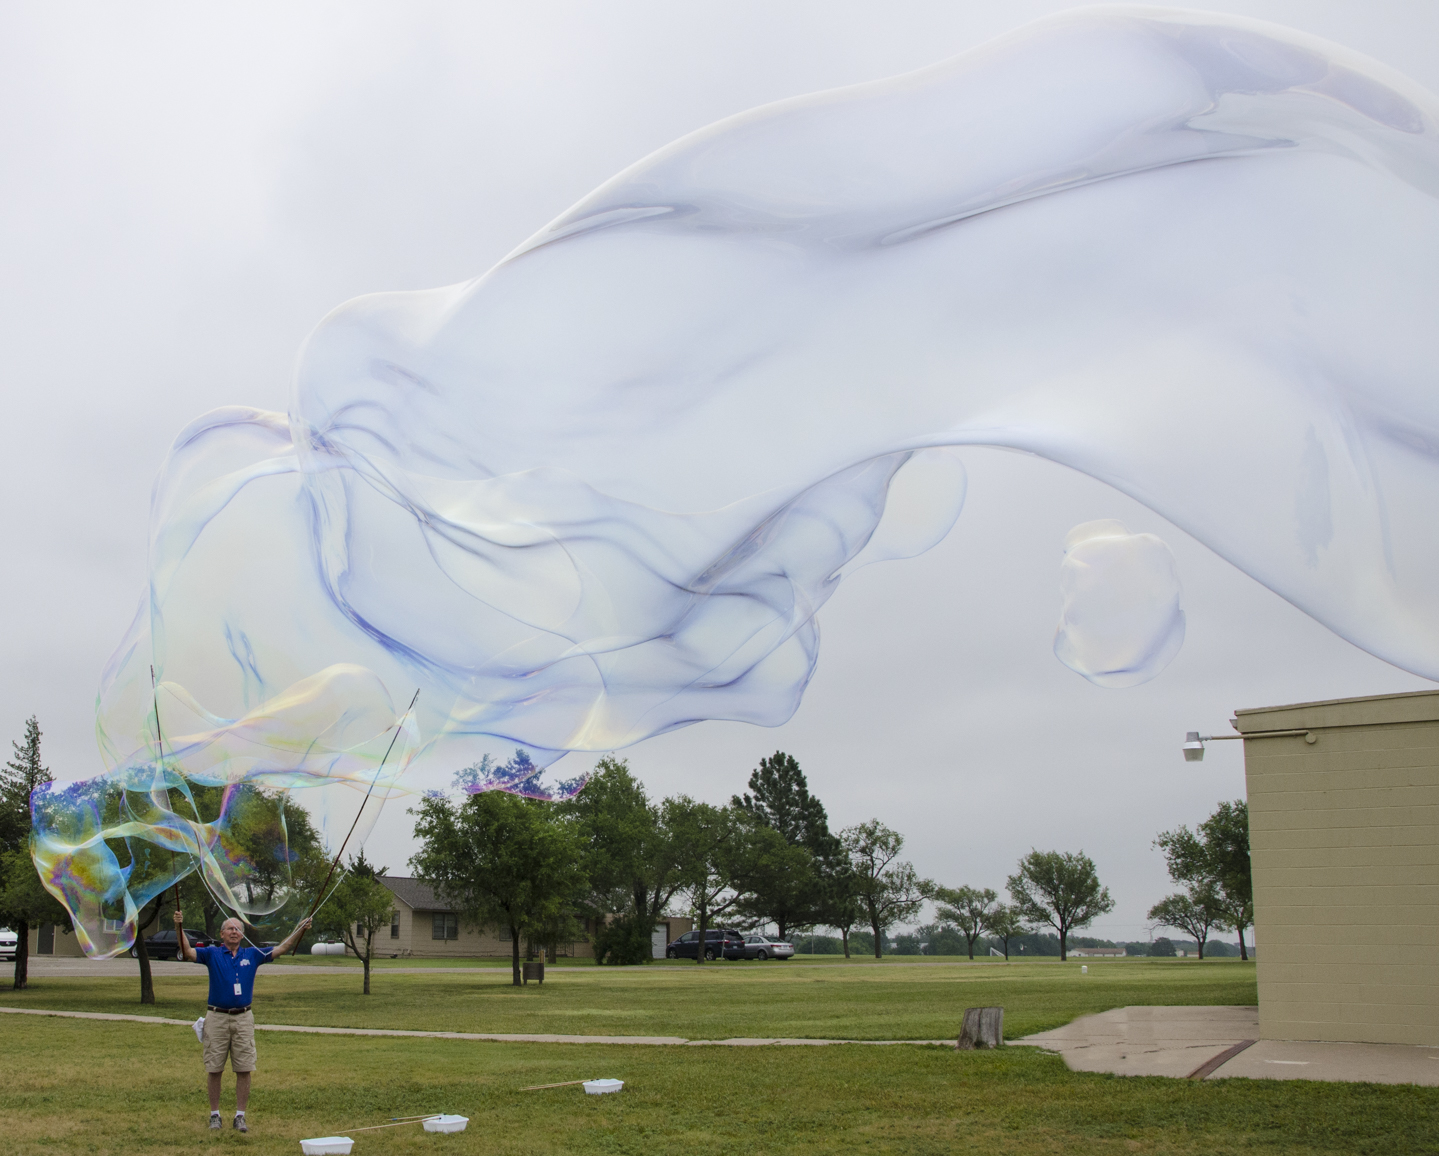 And then we make REALLY big bubbles